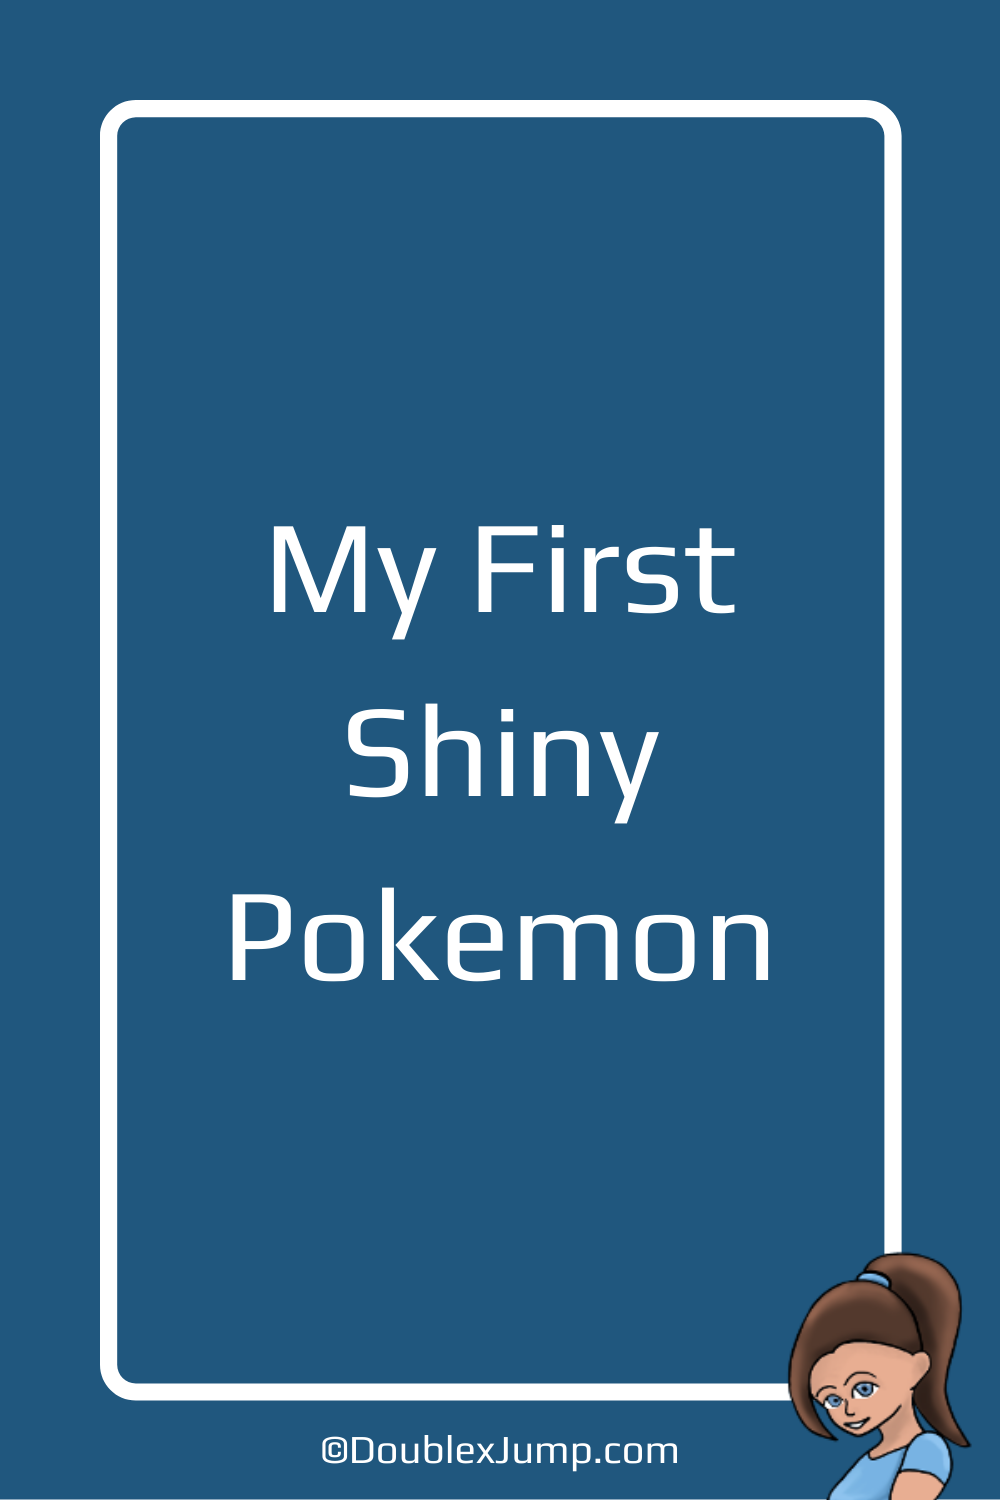 My First Shiny Pokemon | Video Games | Pokemon | DoublexJump.com